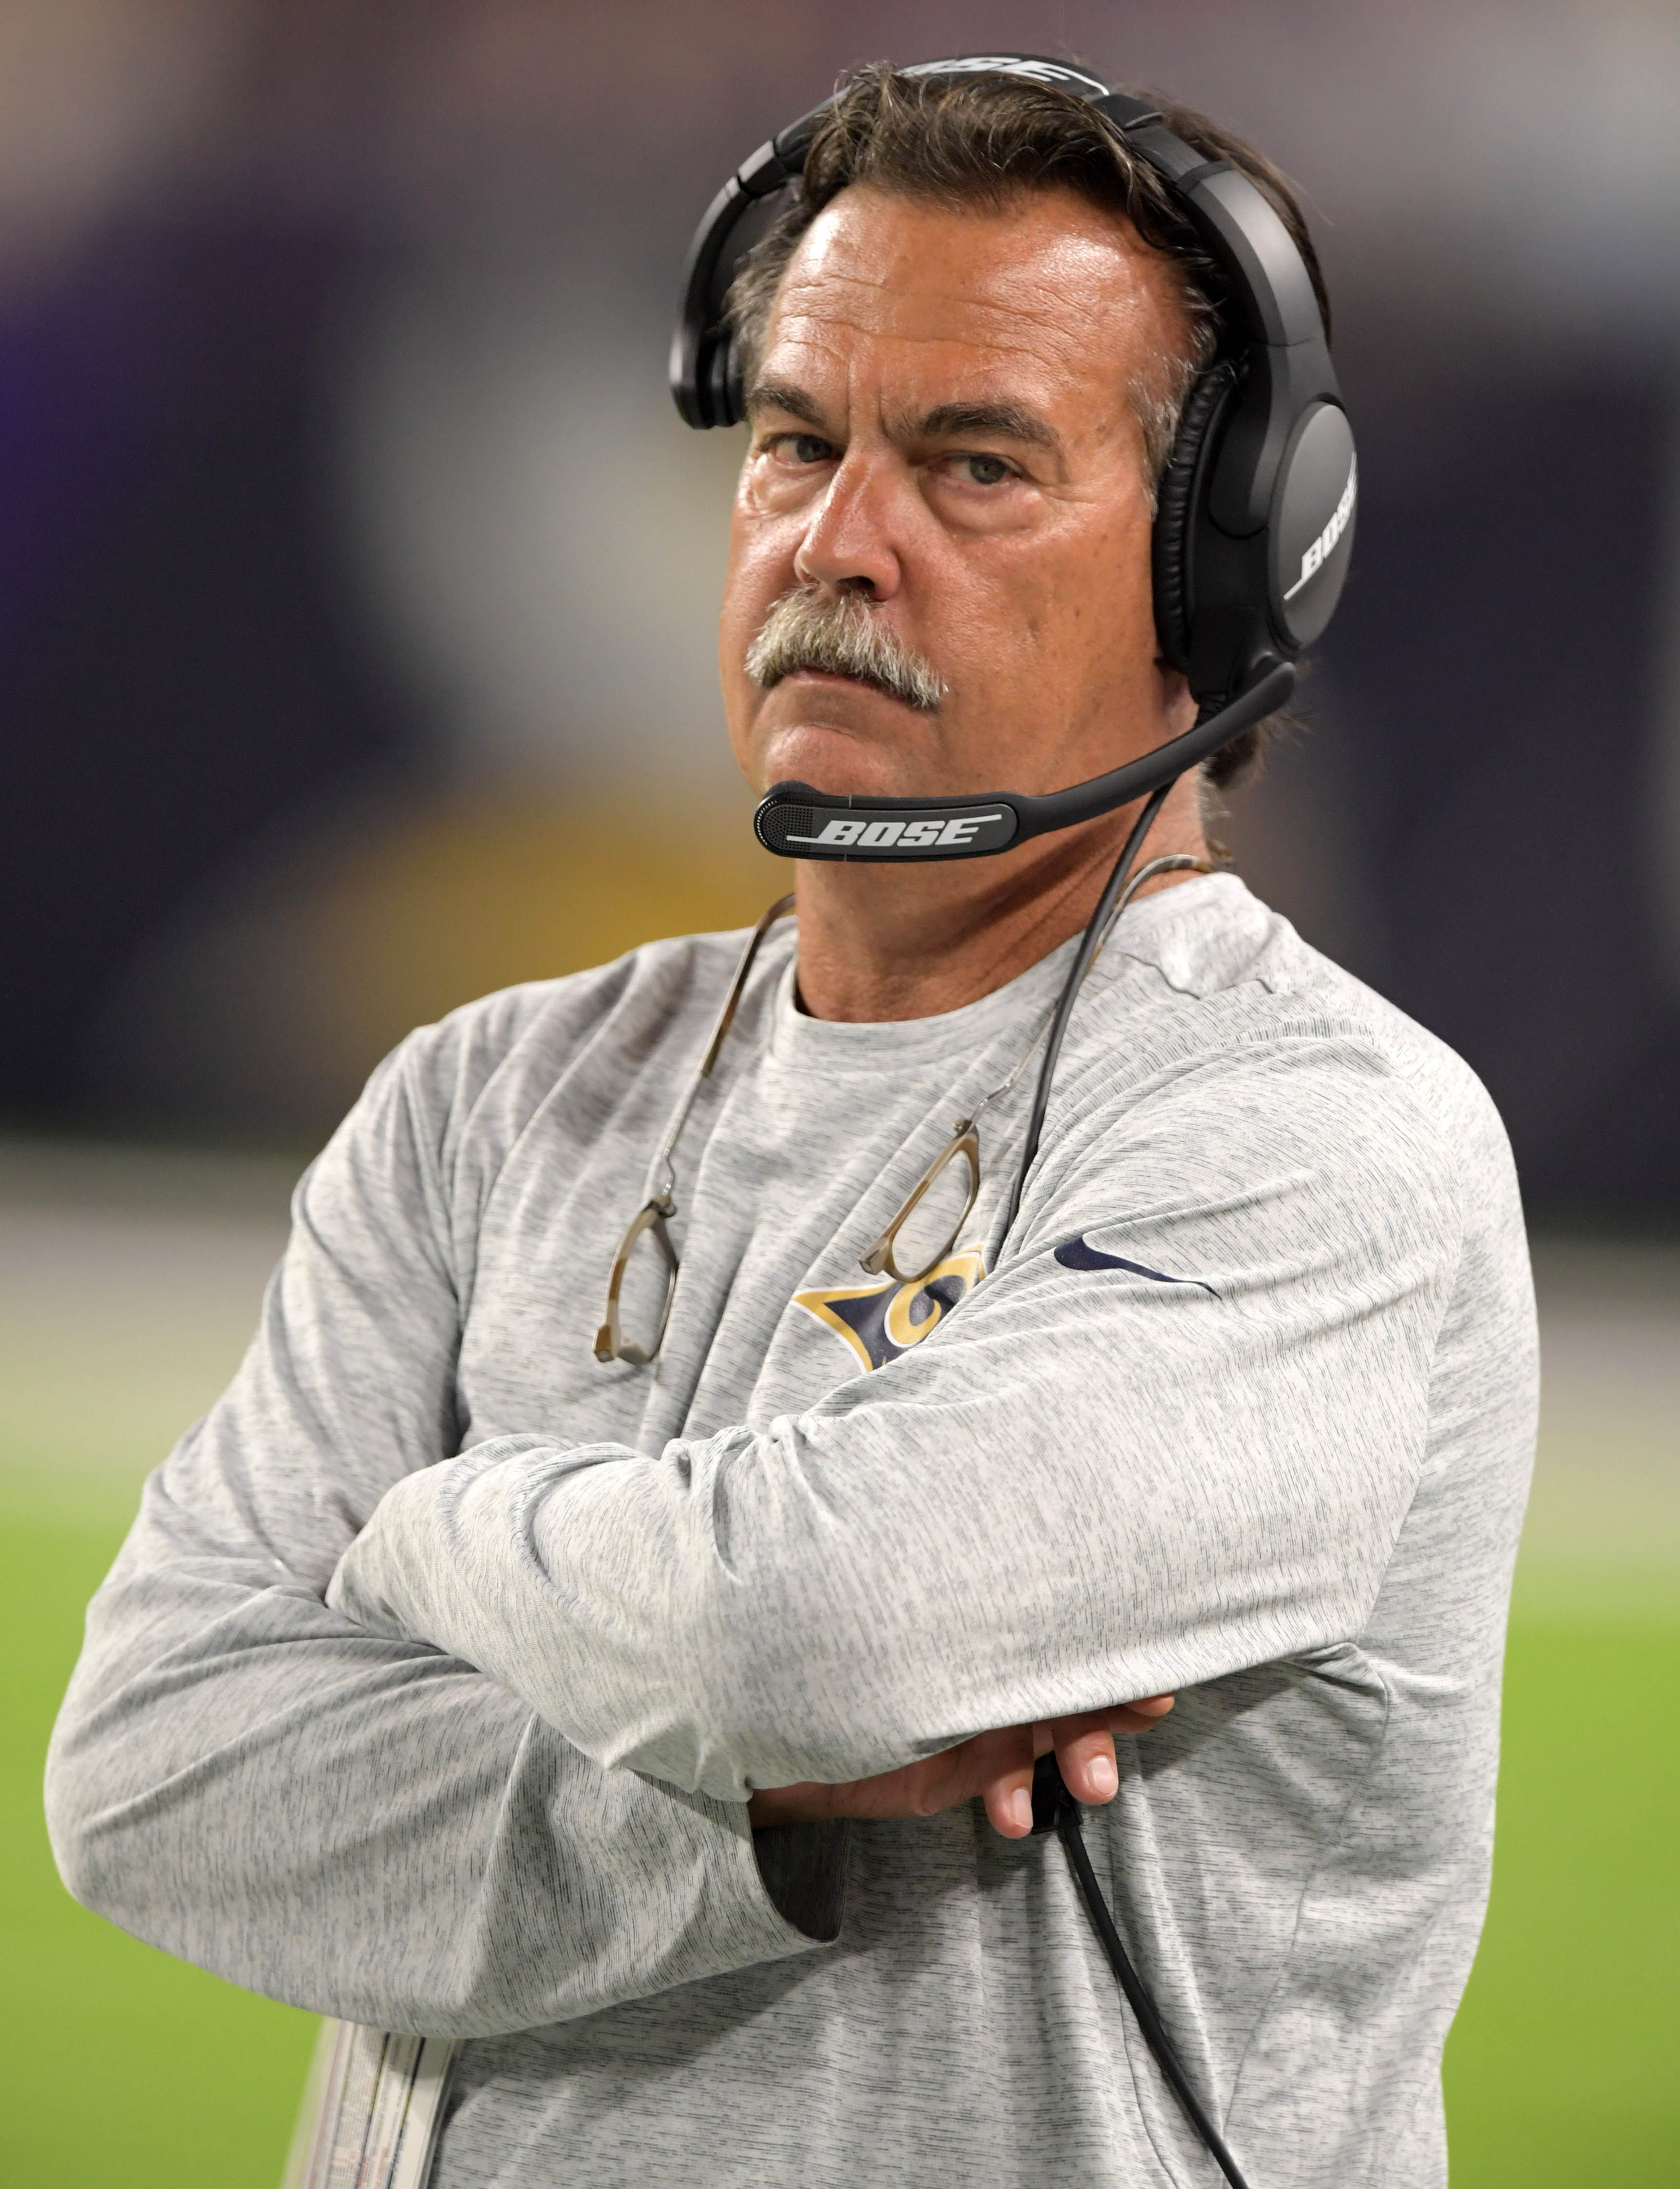 Then-Los Angeles Rams Head Coach Jeff Fisher looks on during the 2016 preseason finale, a 25-27 loss to the Minnesota Vikings, September 1, 2016.